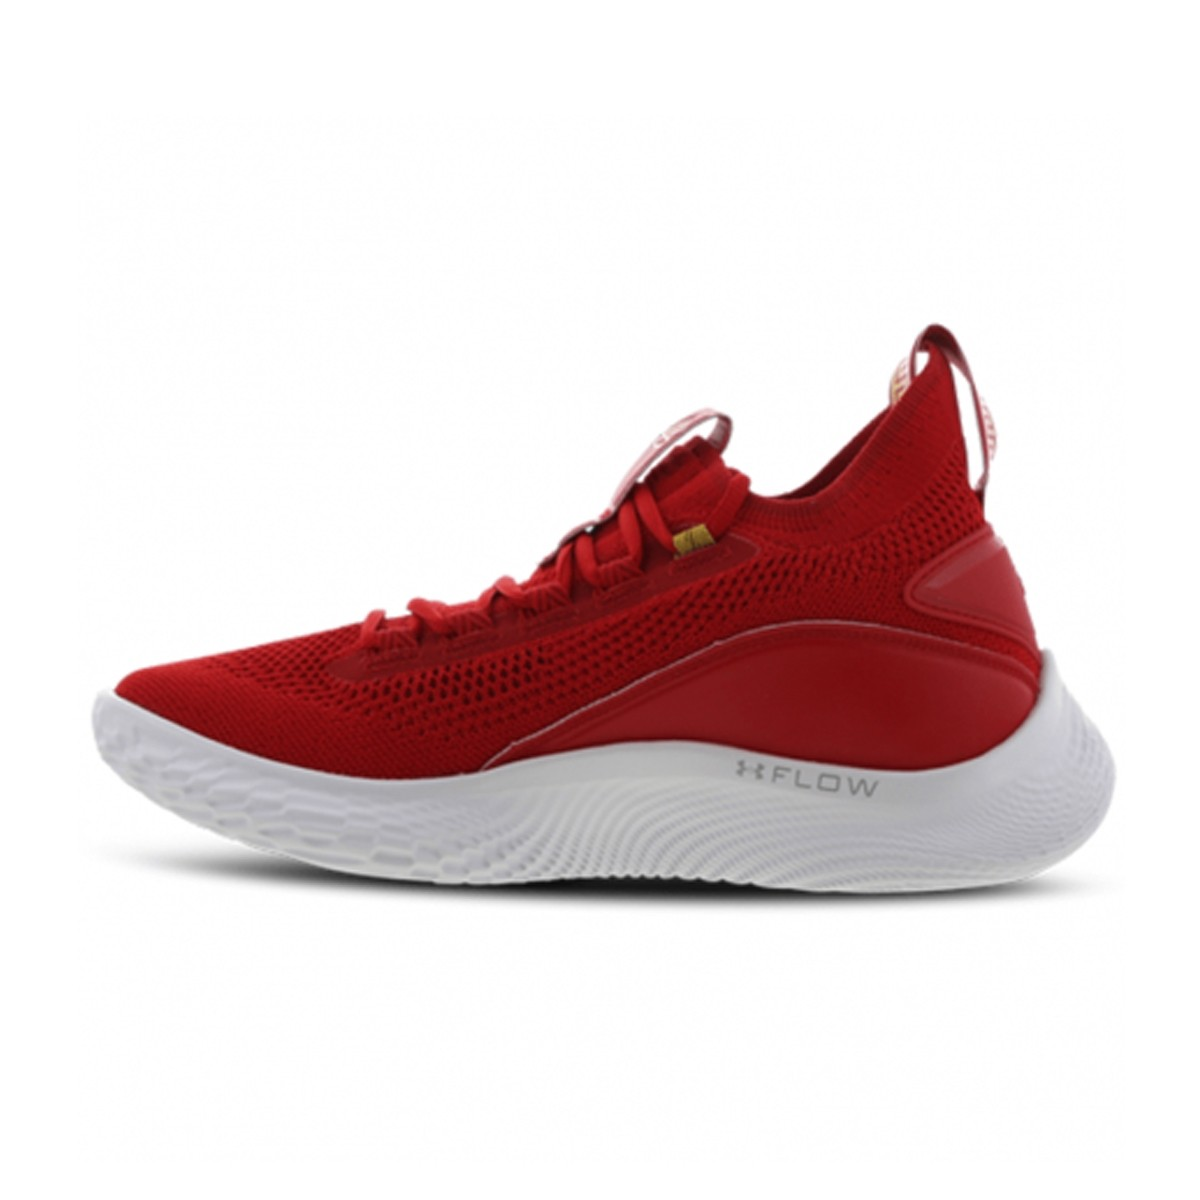 Under Armour Curry 8 Jr 'CNY'-3024036-600